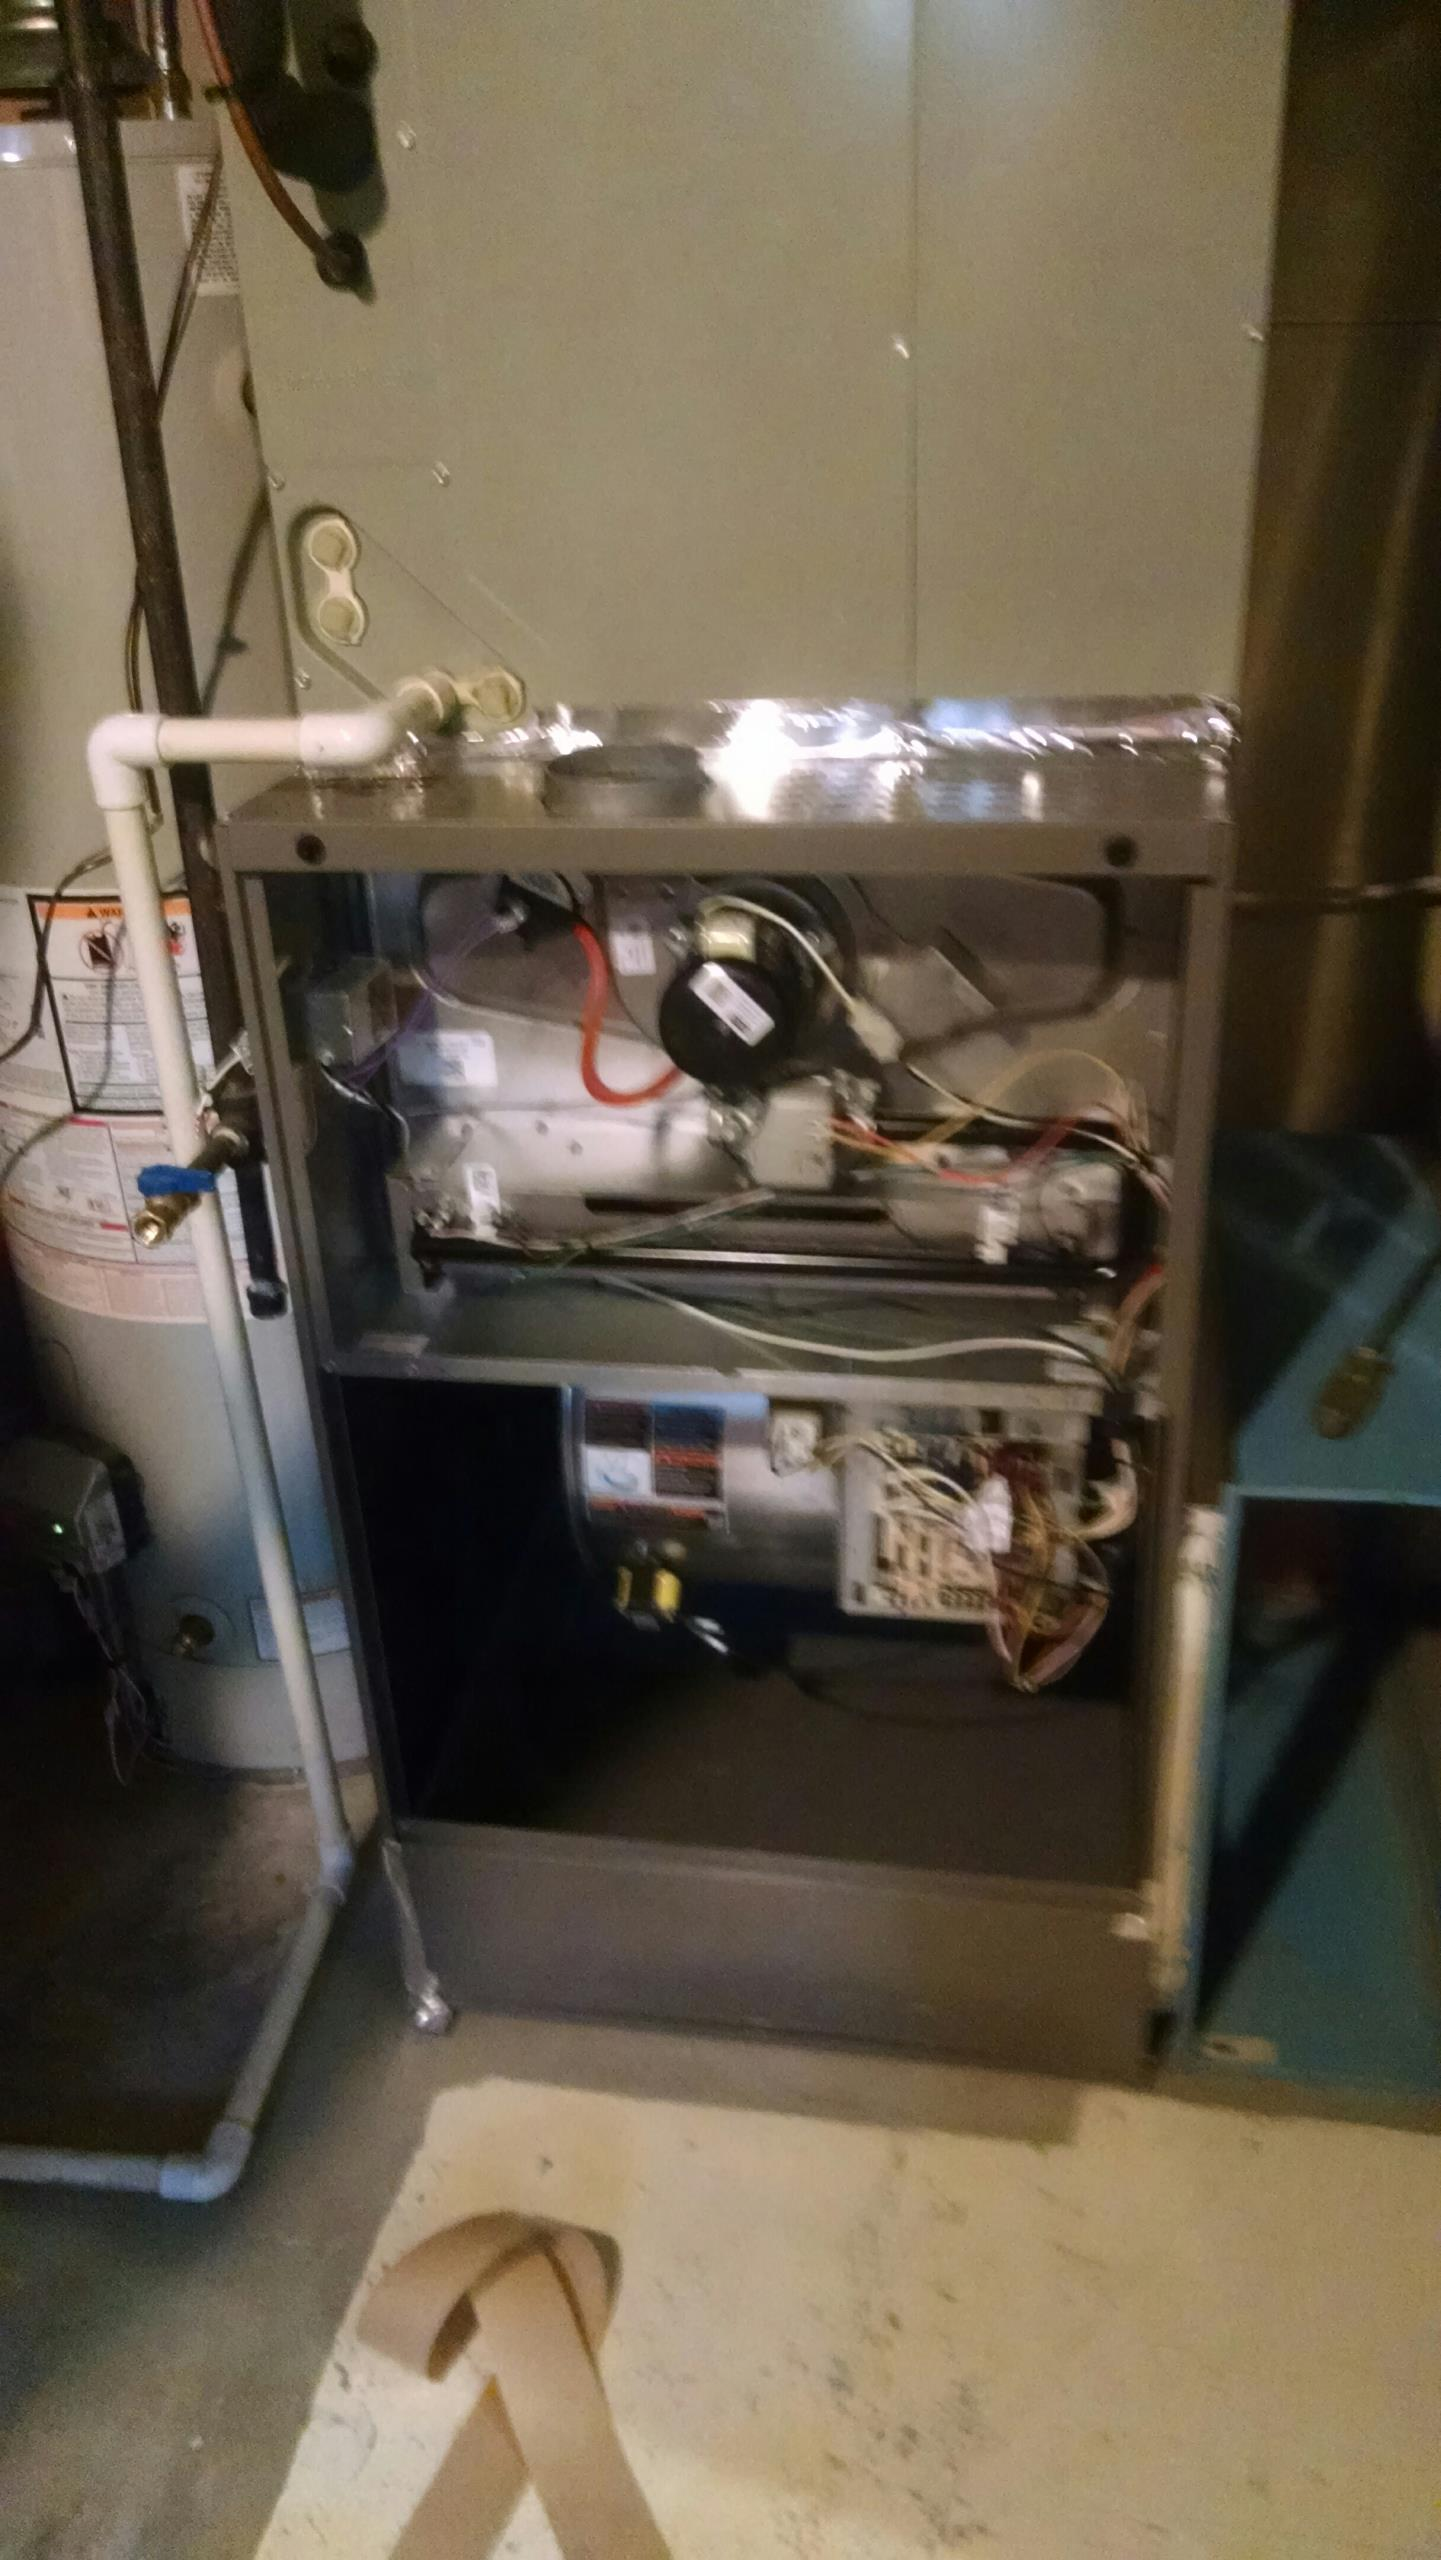 #806B4B Electrical Plumbing Furnace And Air Conditioning Repair  Brand New 8731 Air Conditioning Install Denver images with 1441x2560 px on helpvideos.info - Air Conditioners, Air Coolers and more